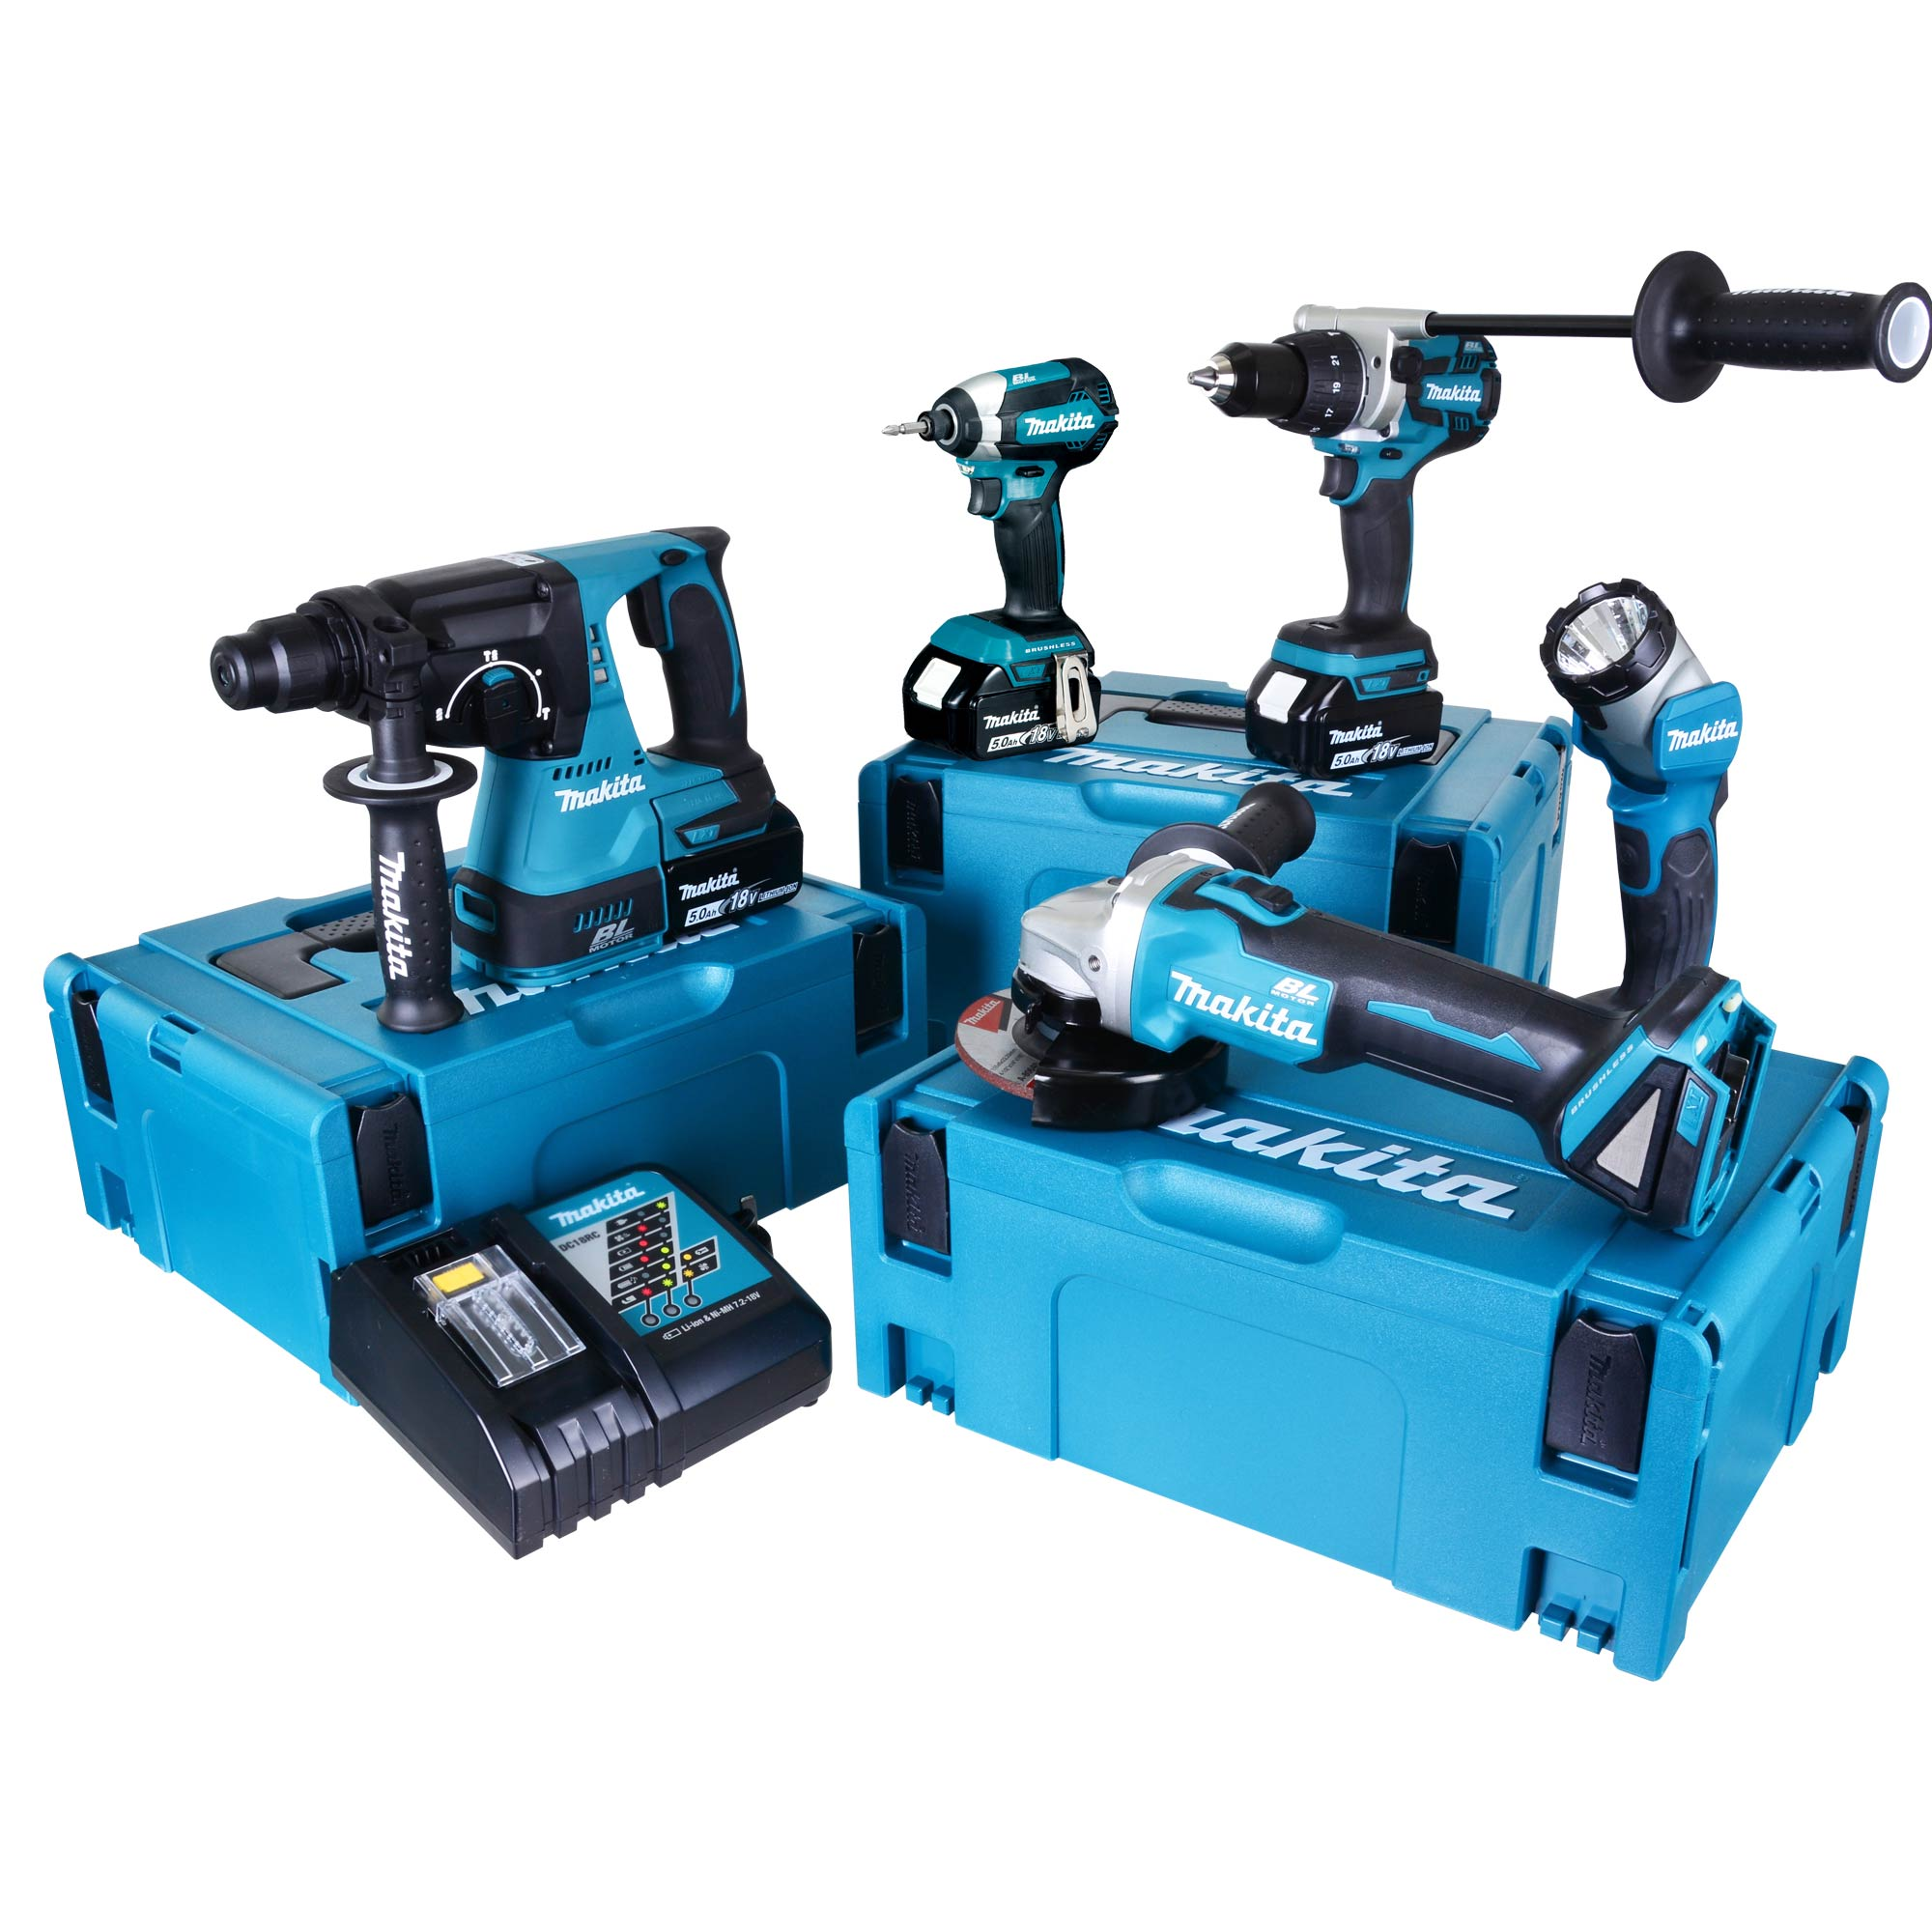 makita topkit5dj makita 18v 5 piece fully brushless kit. Black Bedroom Furniture Sets. Home Design Ideas